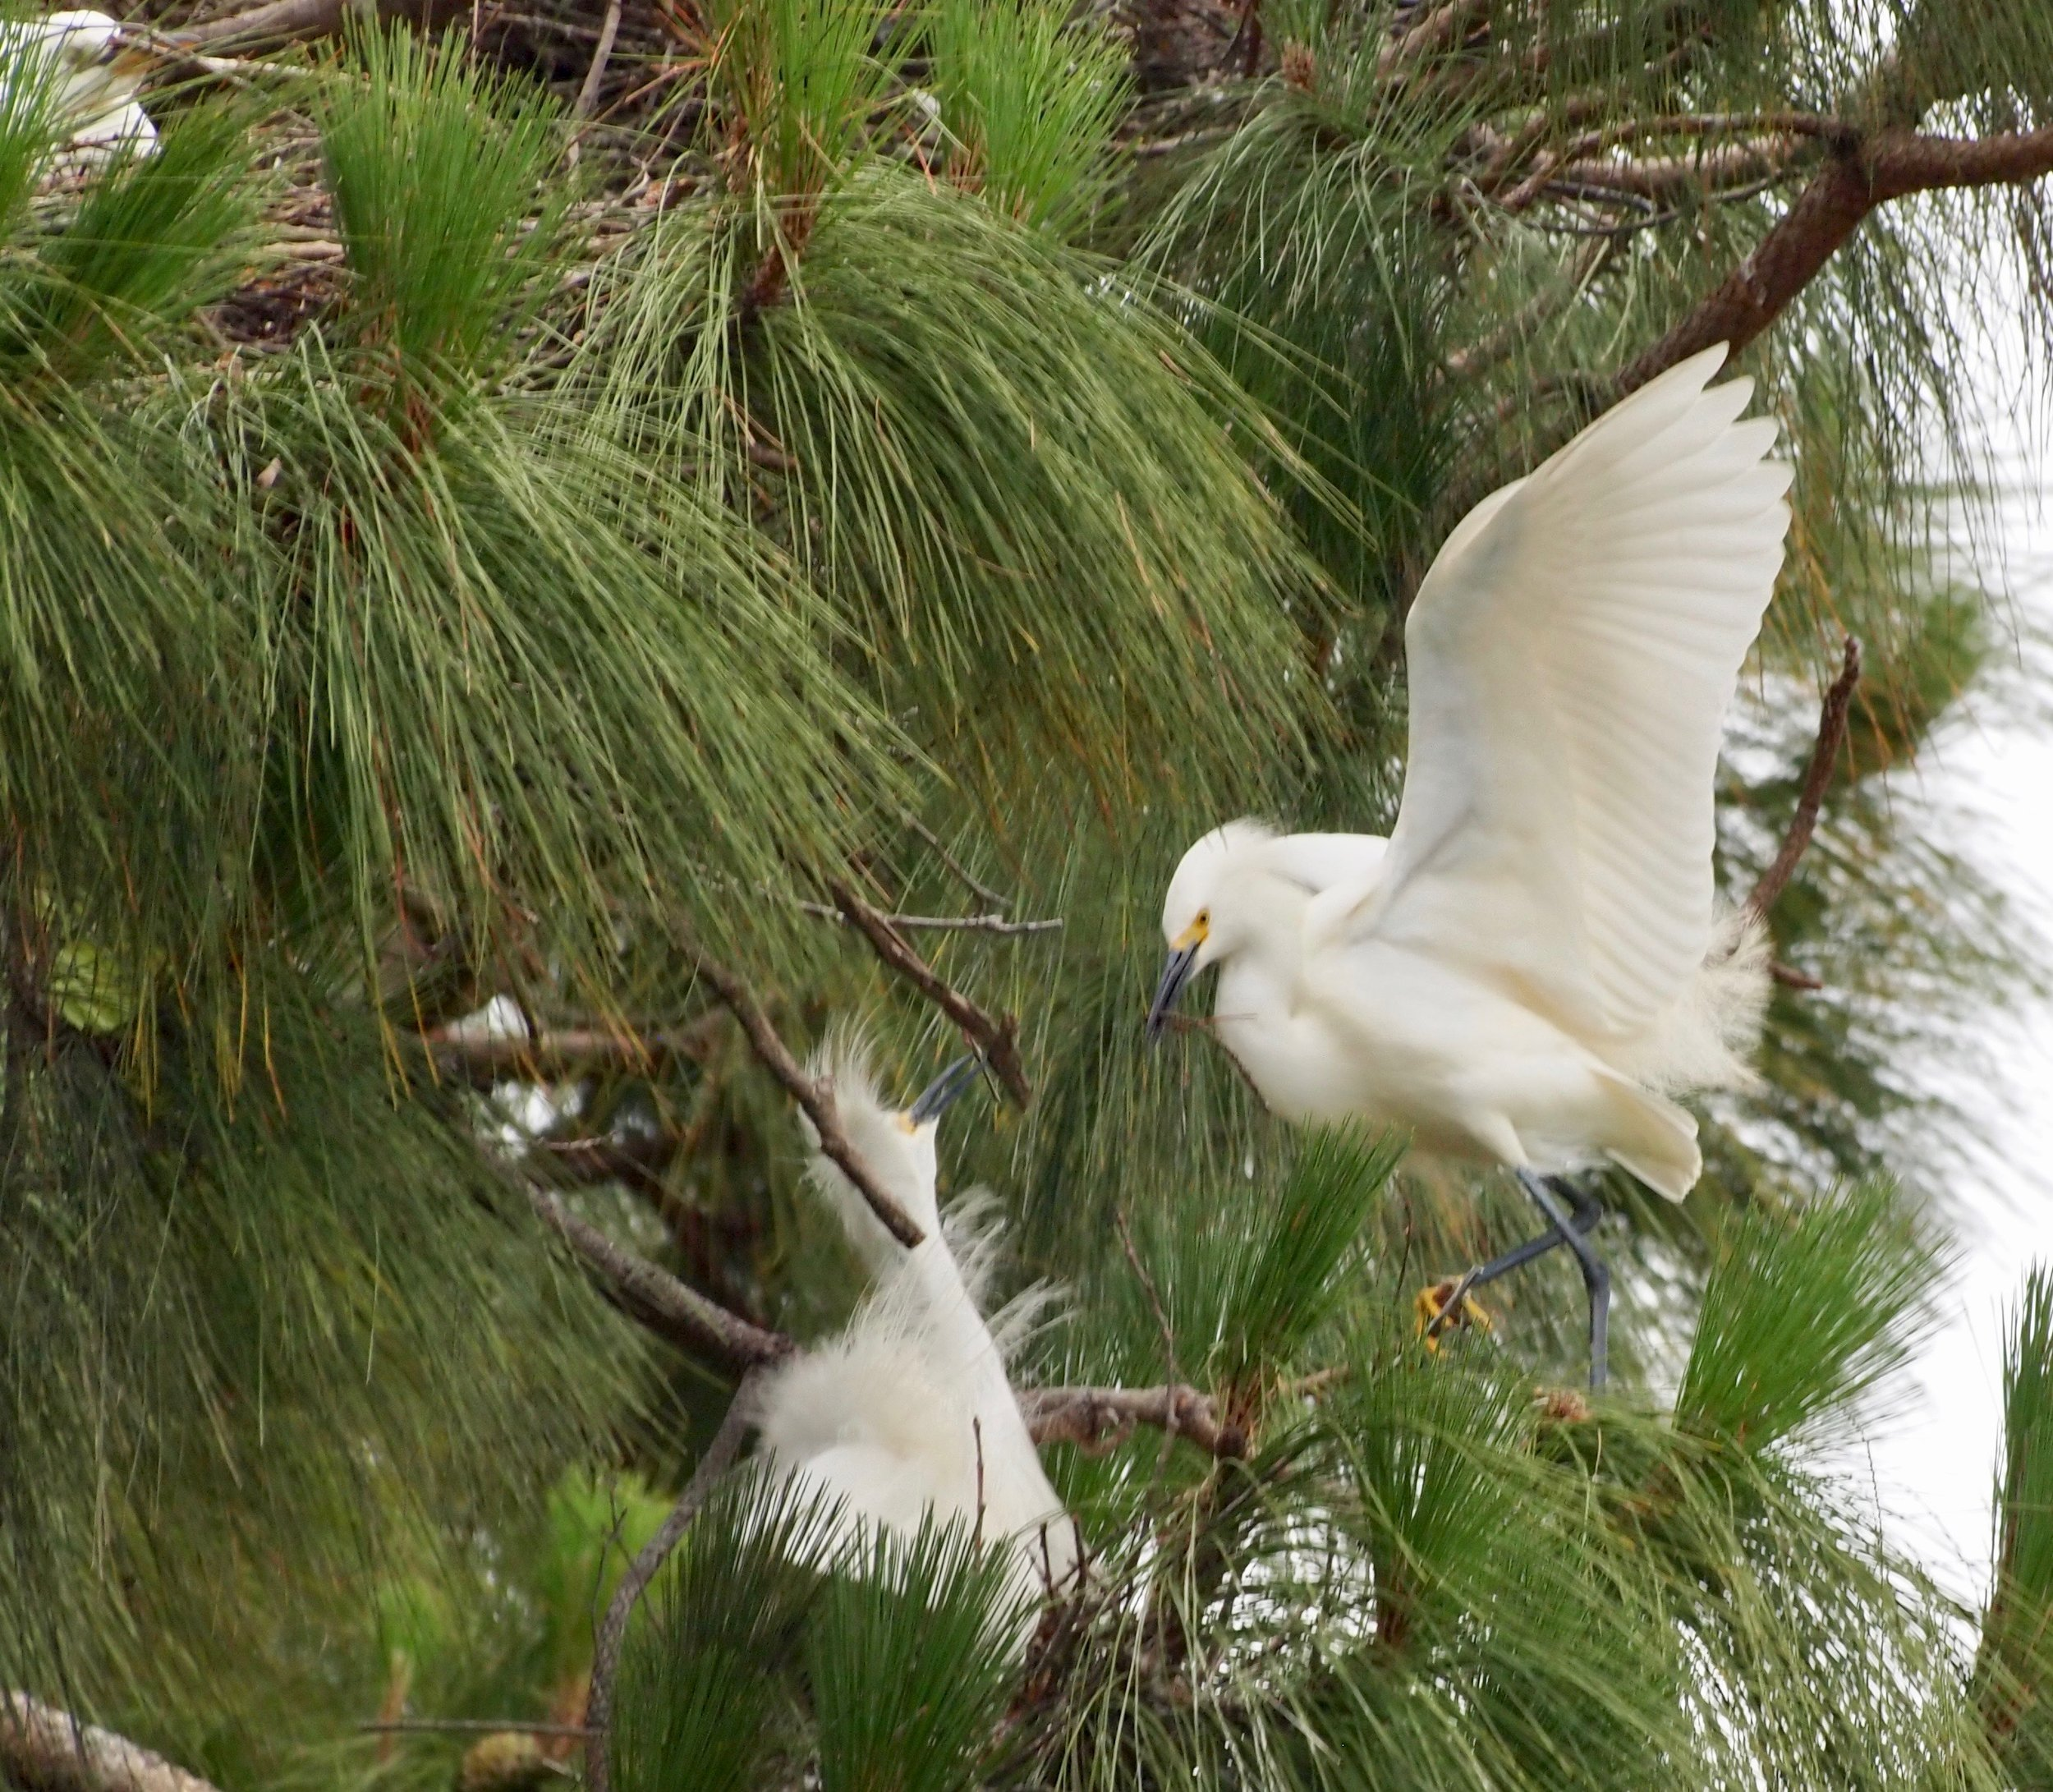 Snowy egret nest and at upper left is a neighboring nest.